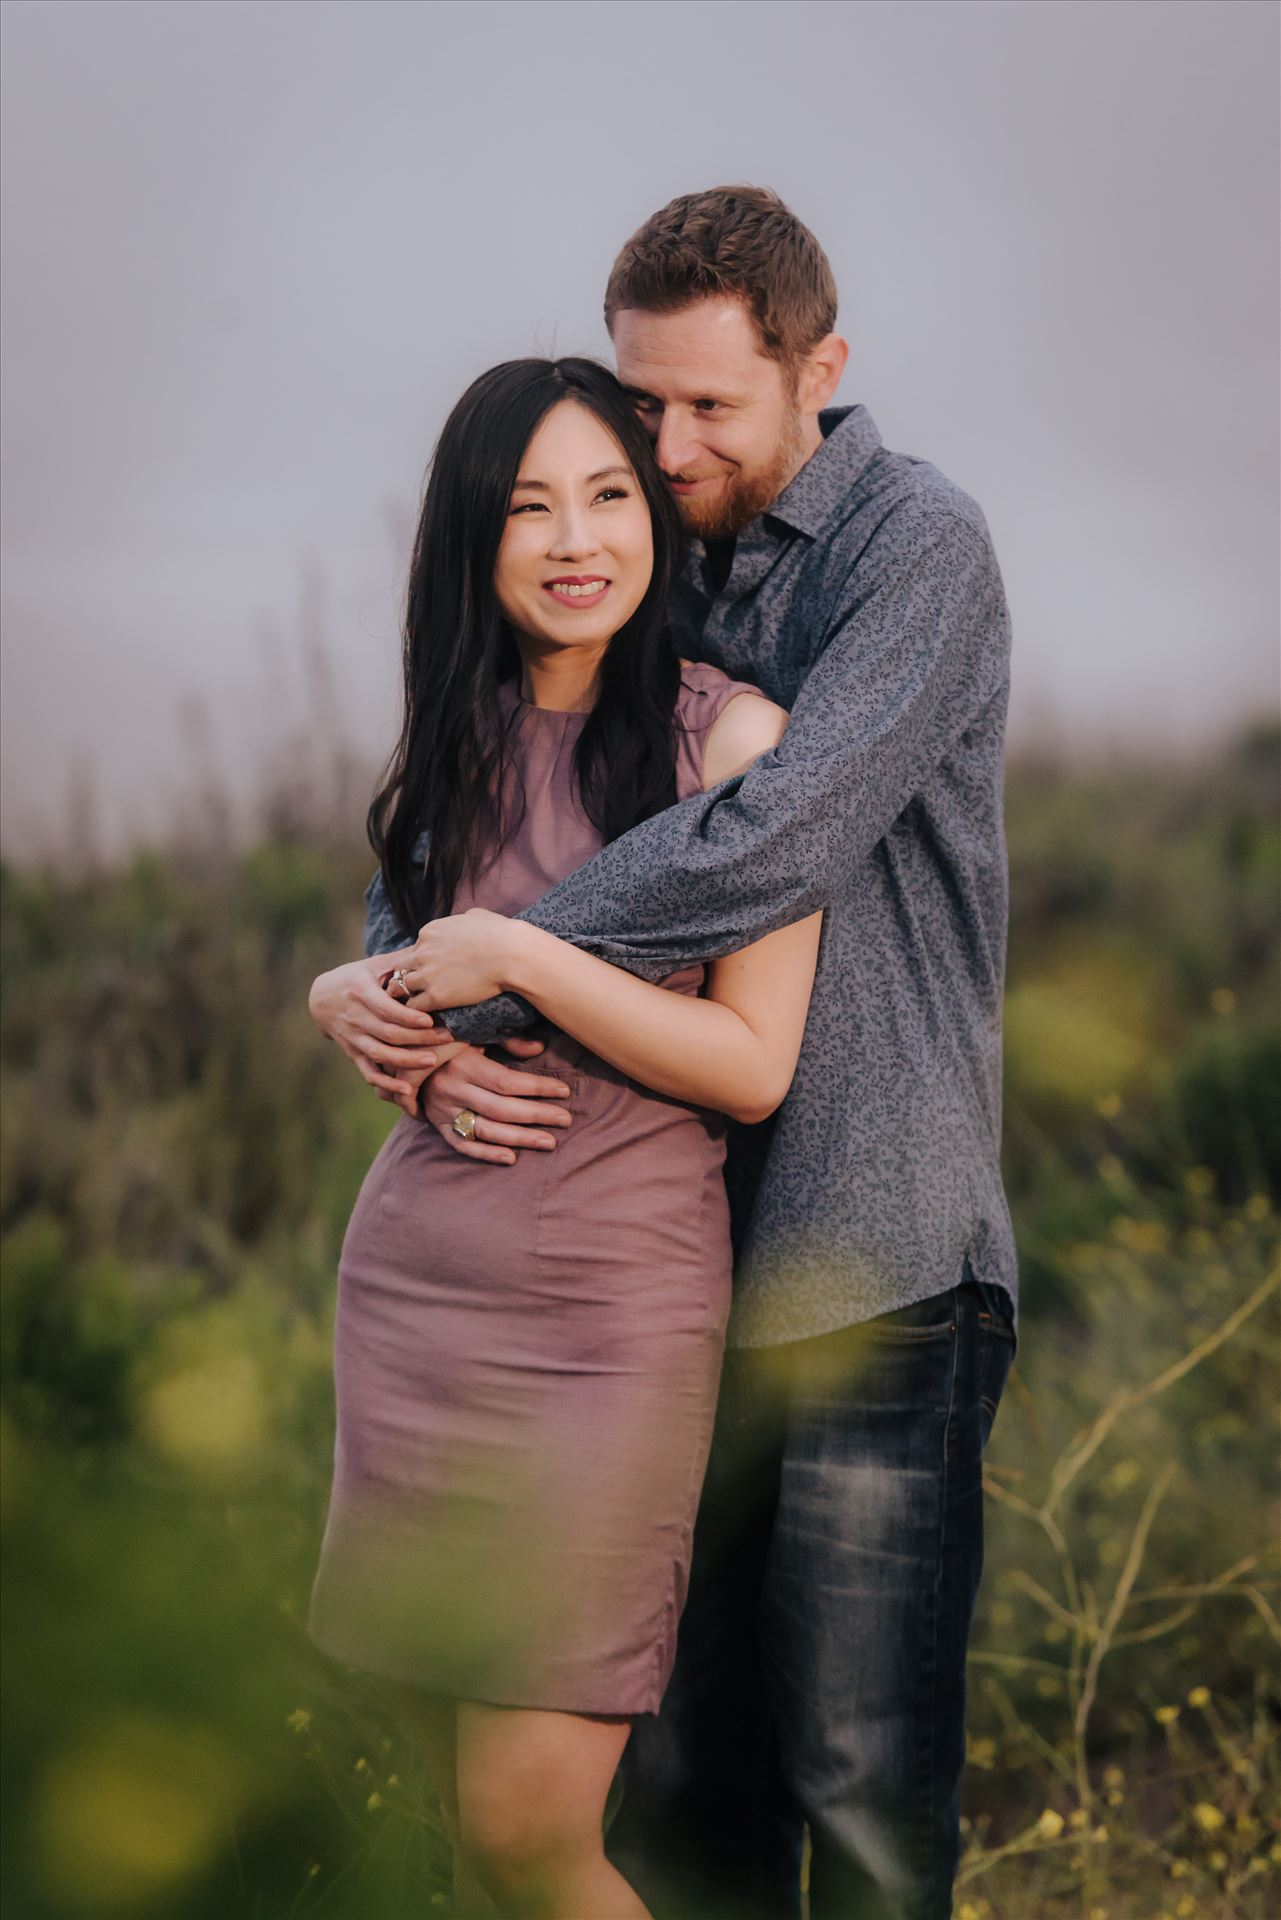 Carmen and Josh 60 Montana de Oro Spooners Cove Engagement Photography Los Osos California.  Hidden Romance and Love of a couple by Sarah Williams